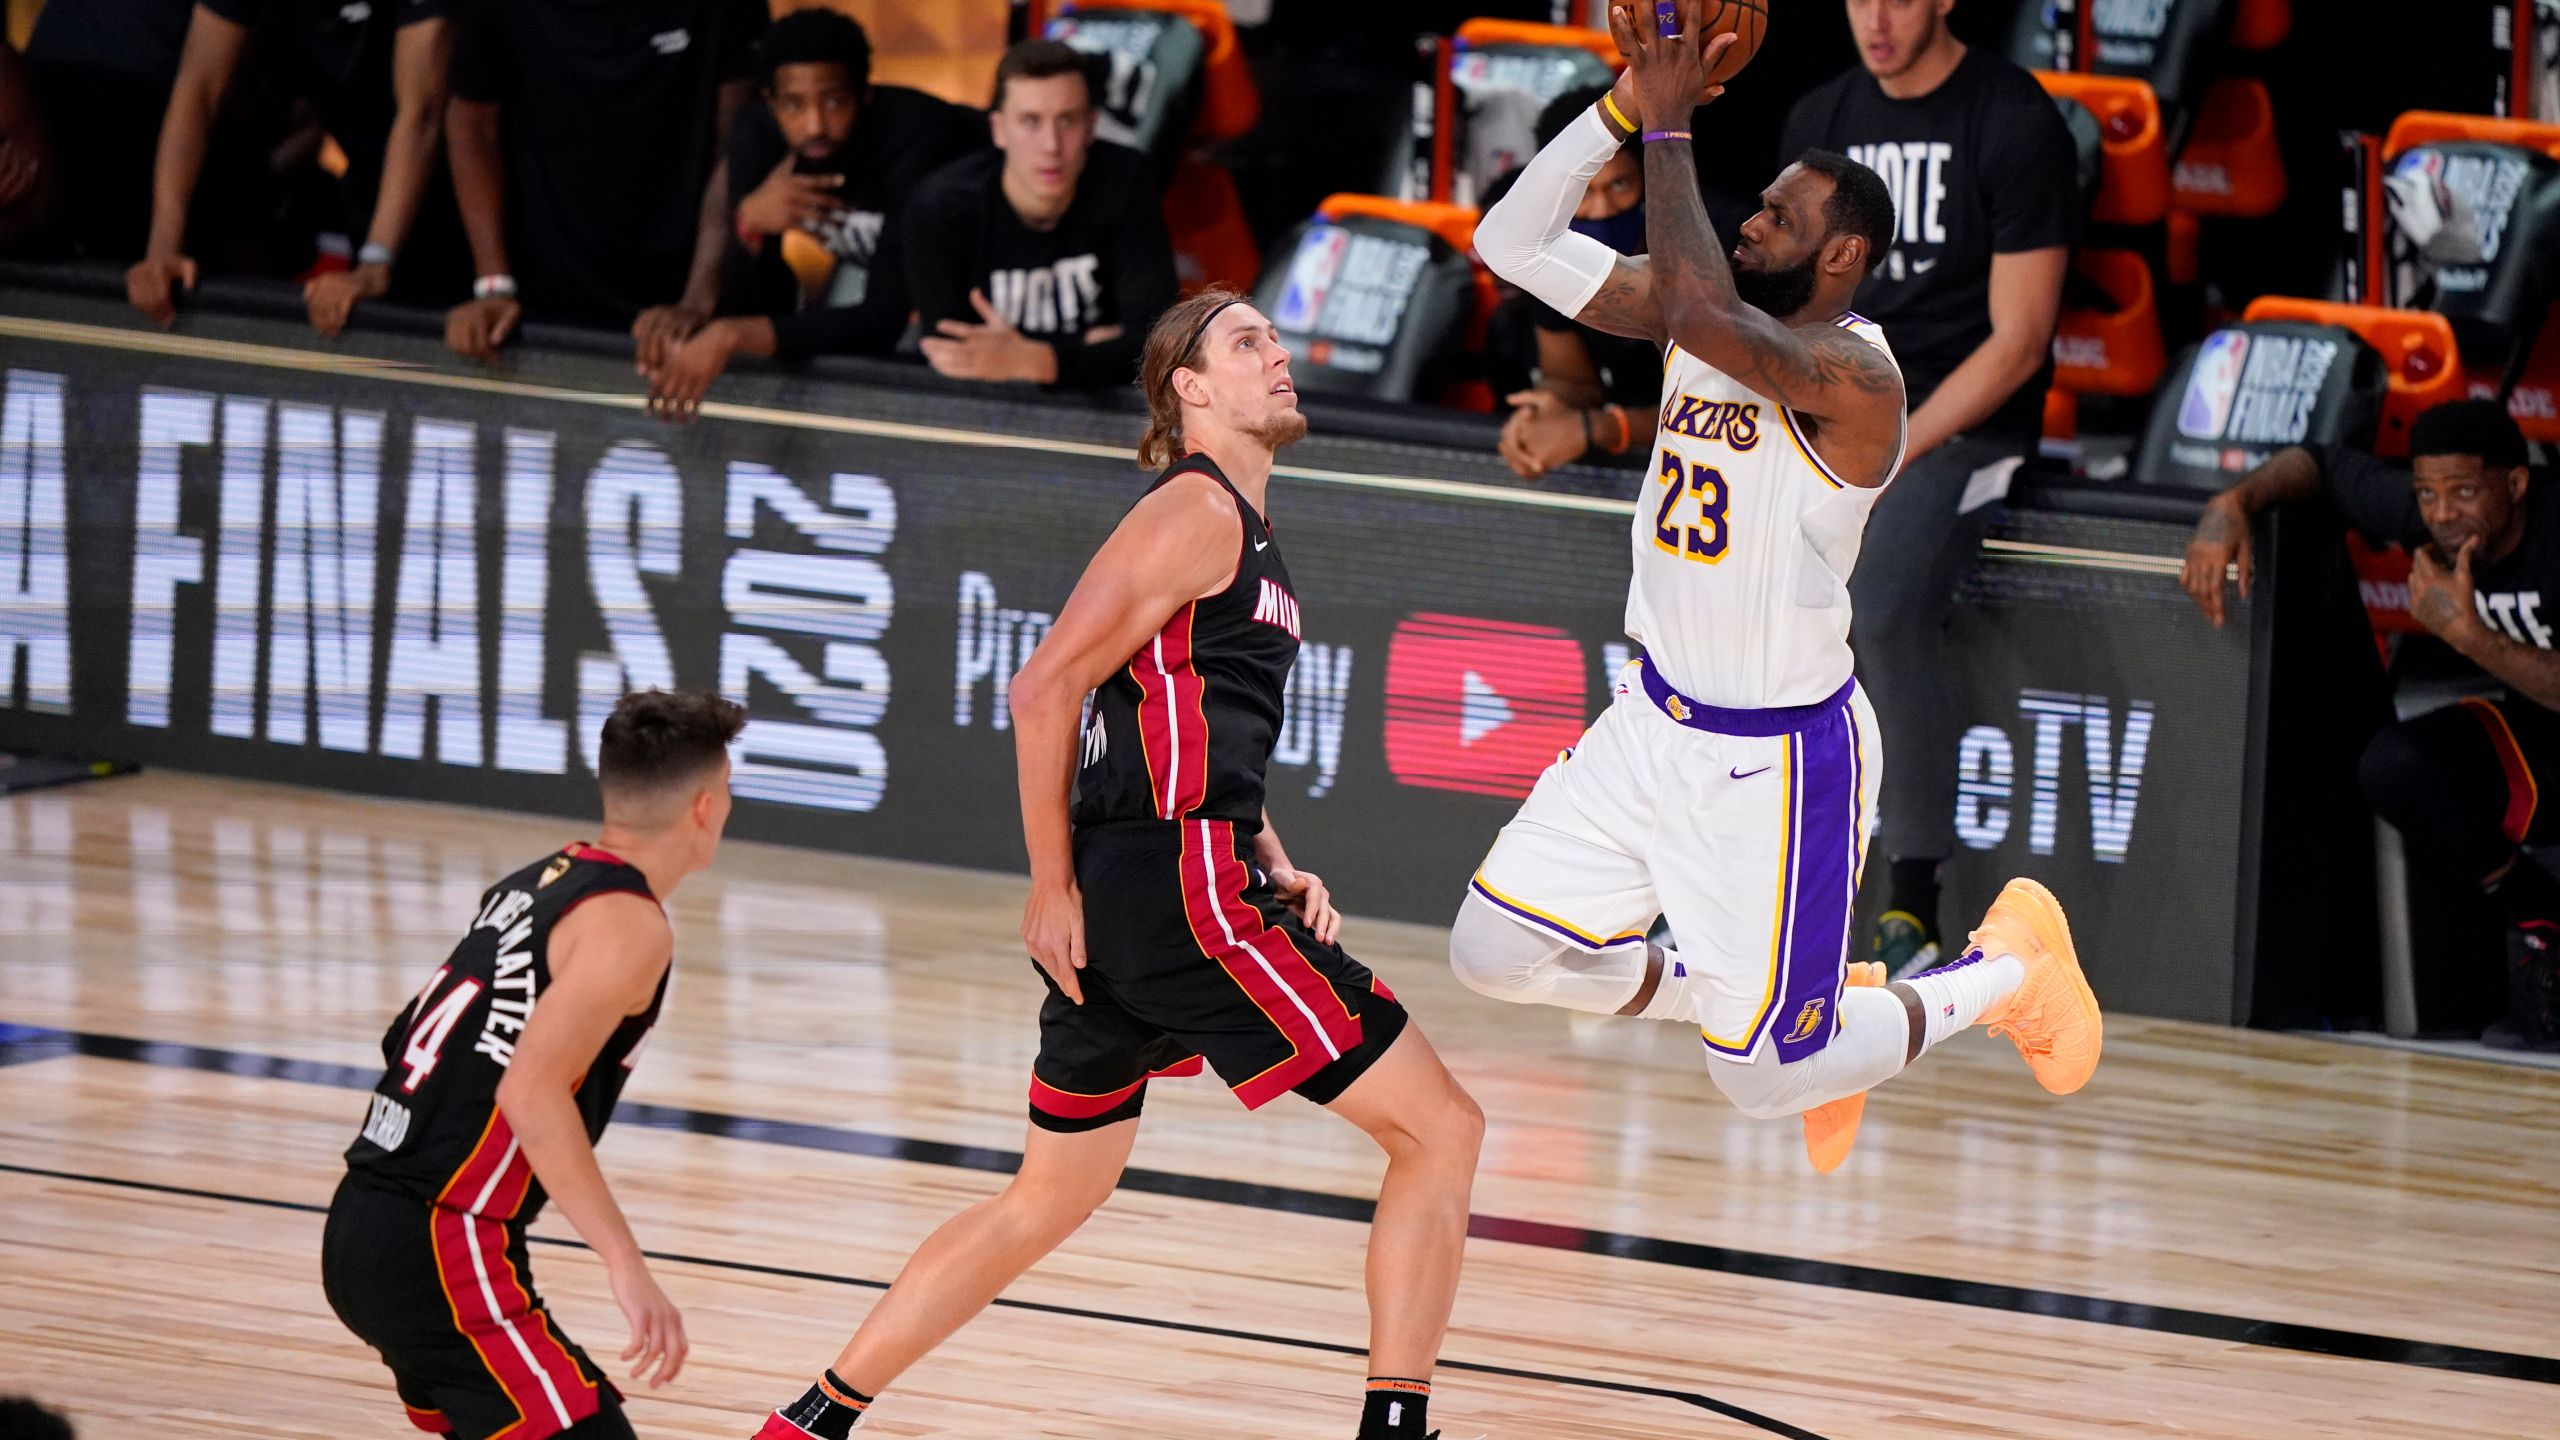 Los Angeles Lakers win NBA Finals; LeBron James secures his fourth championship